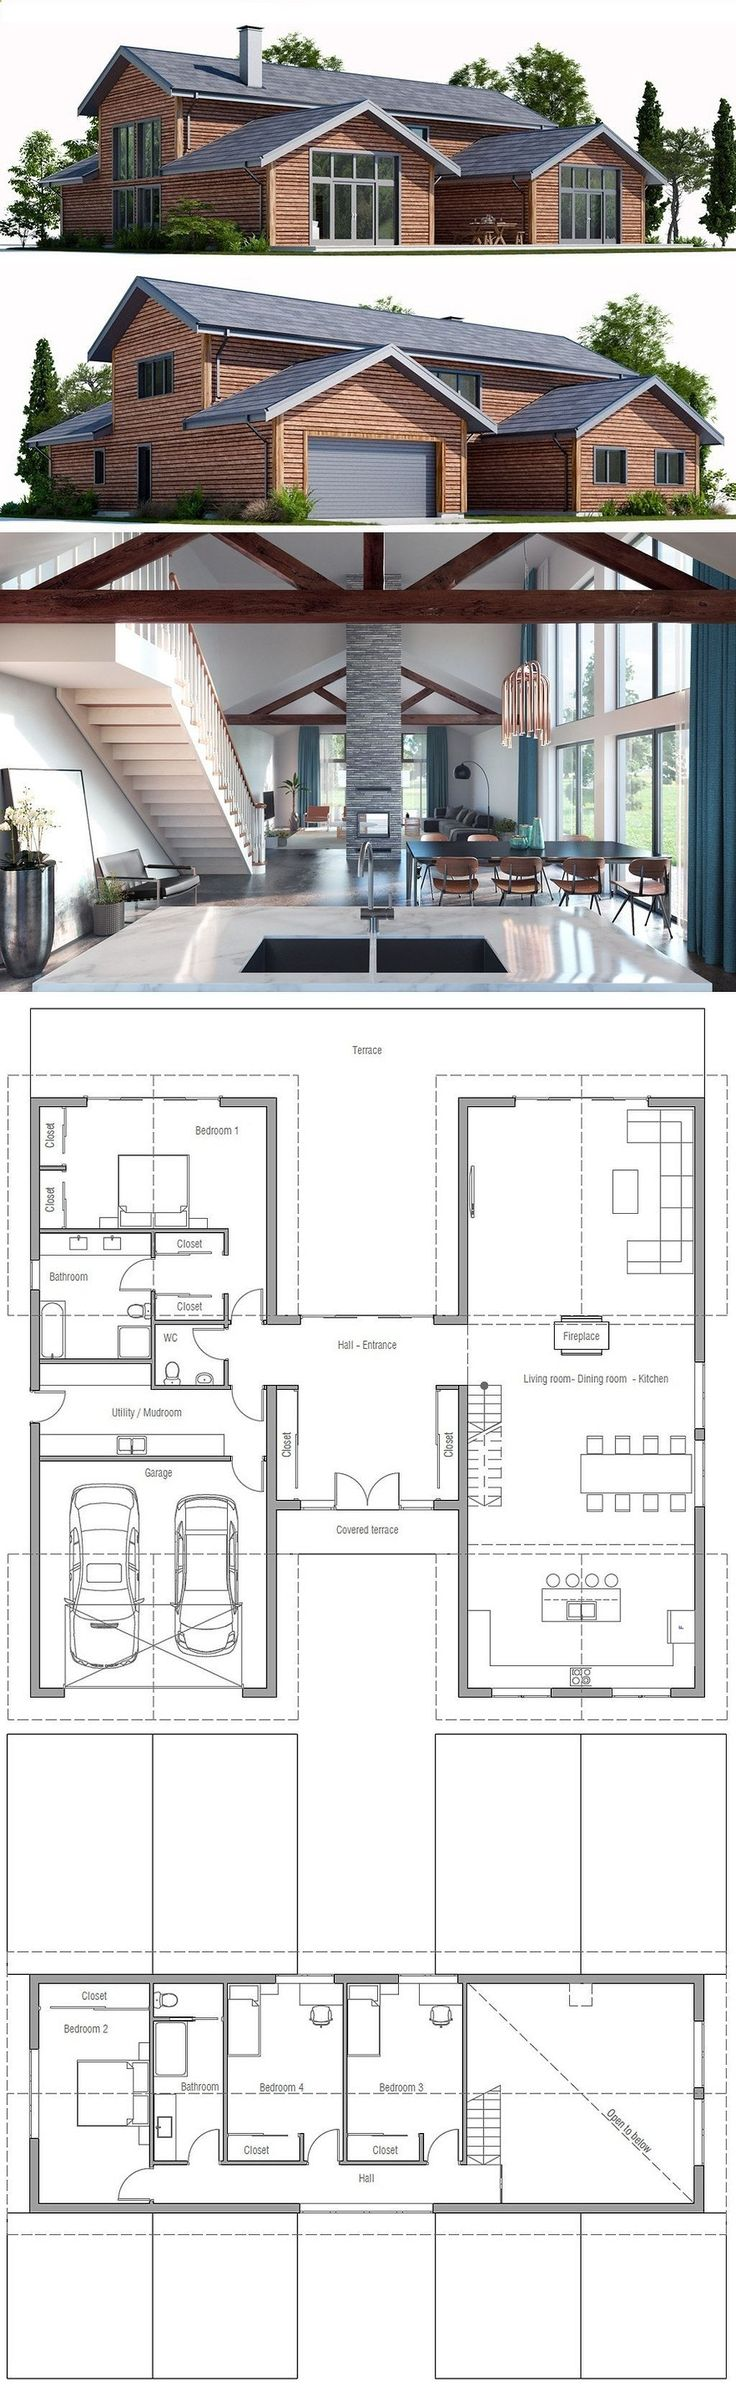 Container House - Awesome 87 Shipping Container House Plans Ideas - Who Else Wants Simple Step-By-Step Plans To Design And Build A Container Home From Scratch? #ShippingContainerHomes